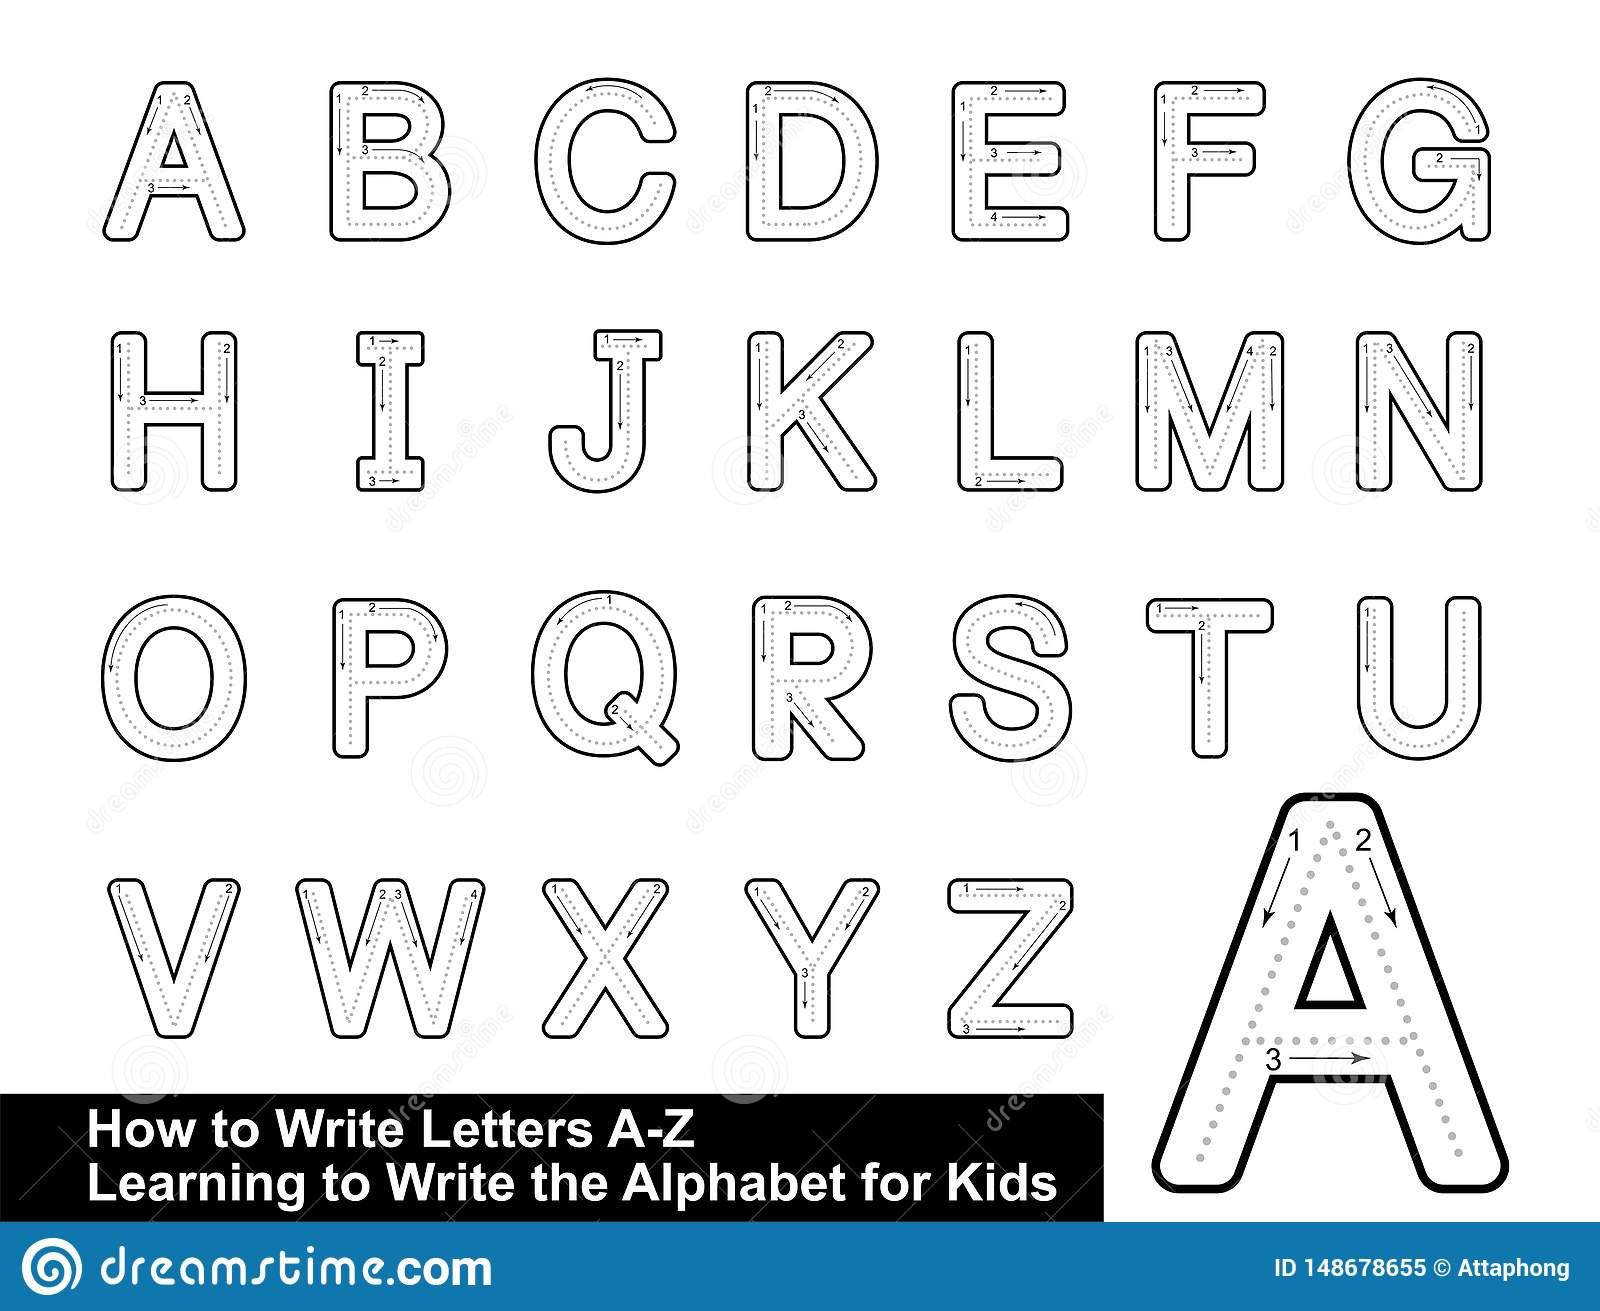 Alphabet Tracing Letters Stepstep Letter Tracing Write with Alphabet Tracing Letters For Preschoolers